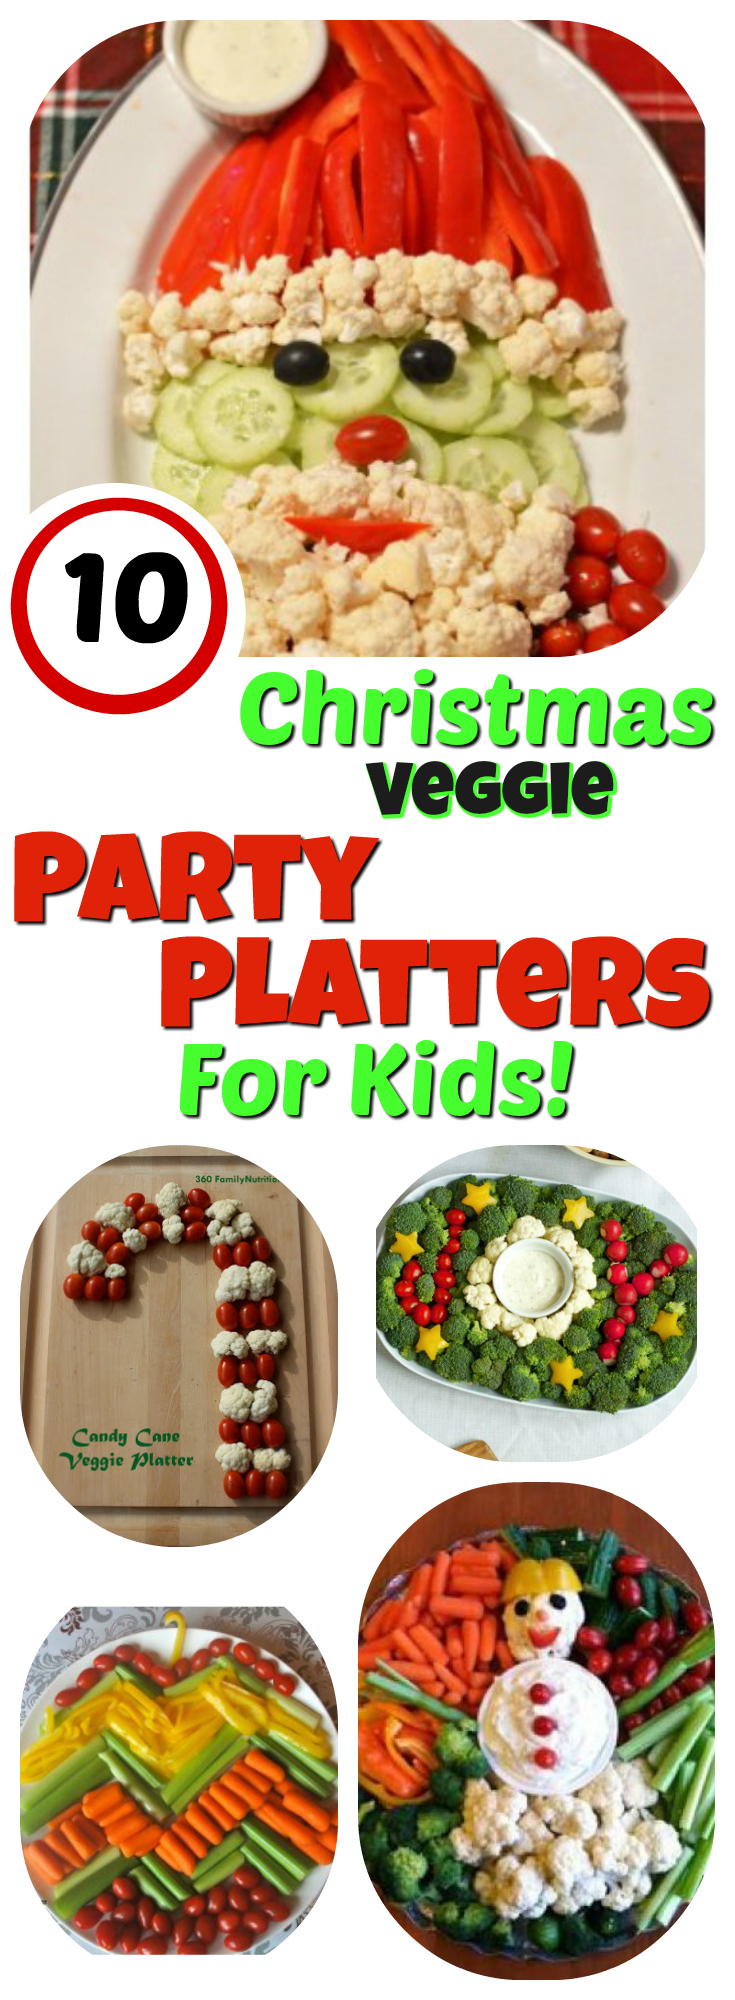 Veggie Platters for Kids 10 Christmas Party Trays